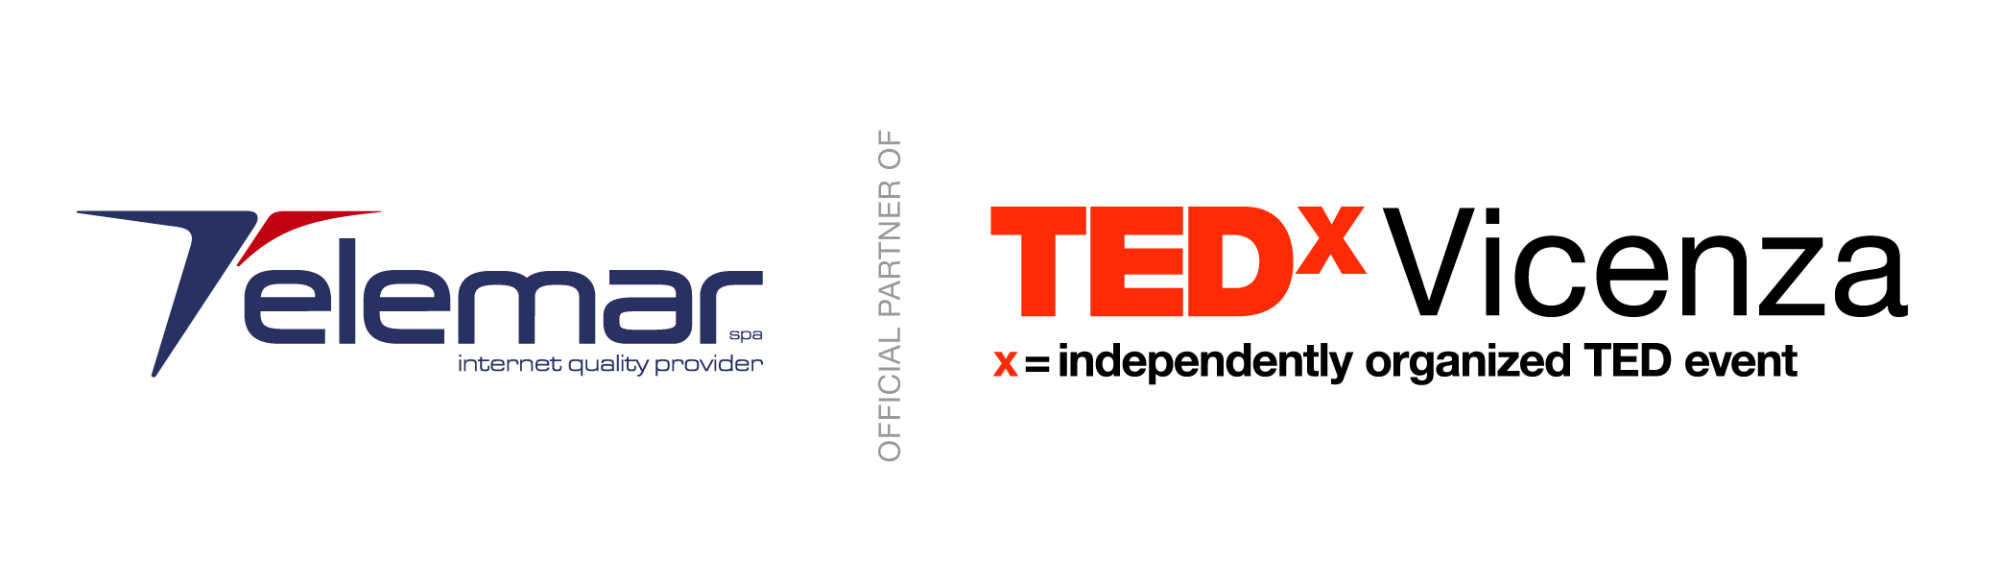 Telemar partner ufficiale di TEDxVicenza TEDX_Telemar_Logo-01_1646_1.png (Art. corrente, Pag. 1, Foto generica)